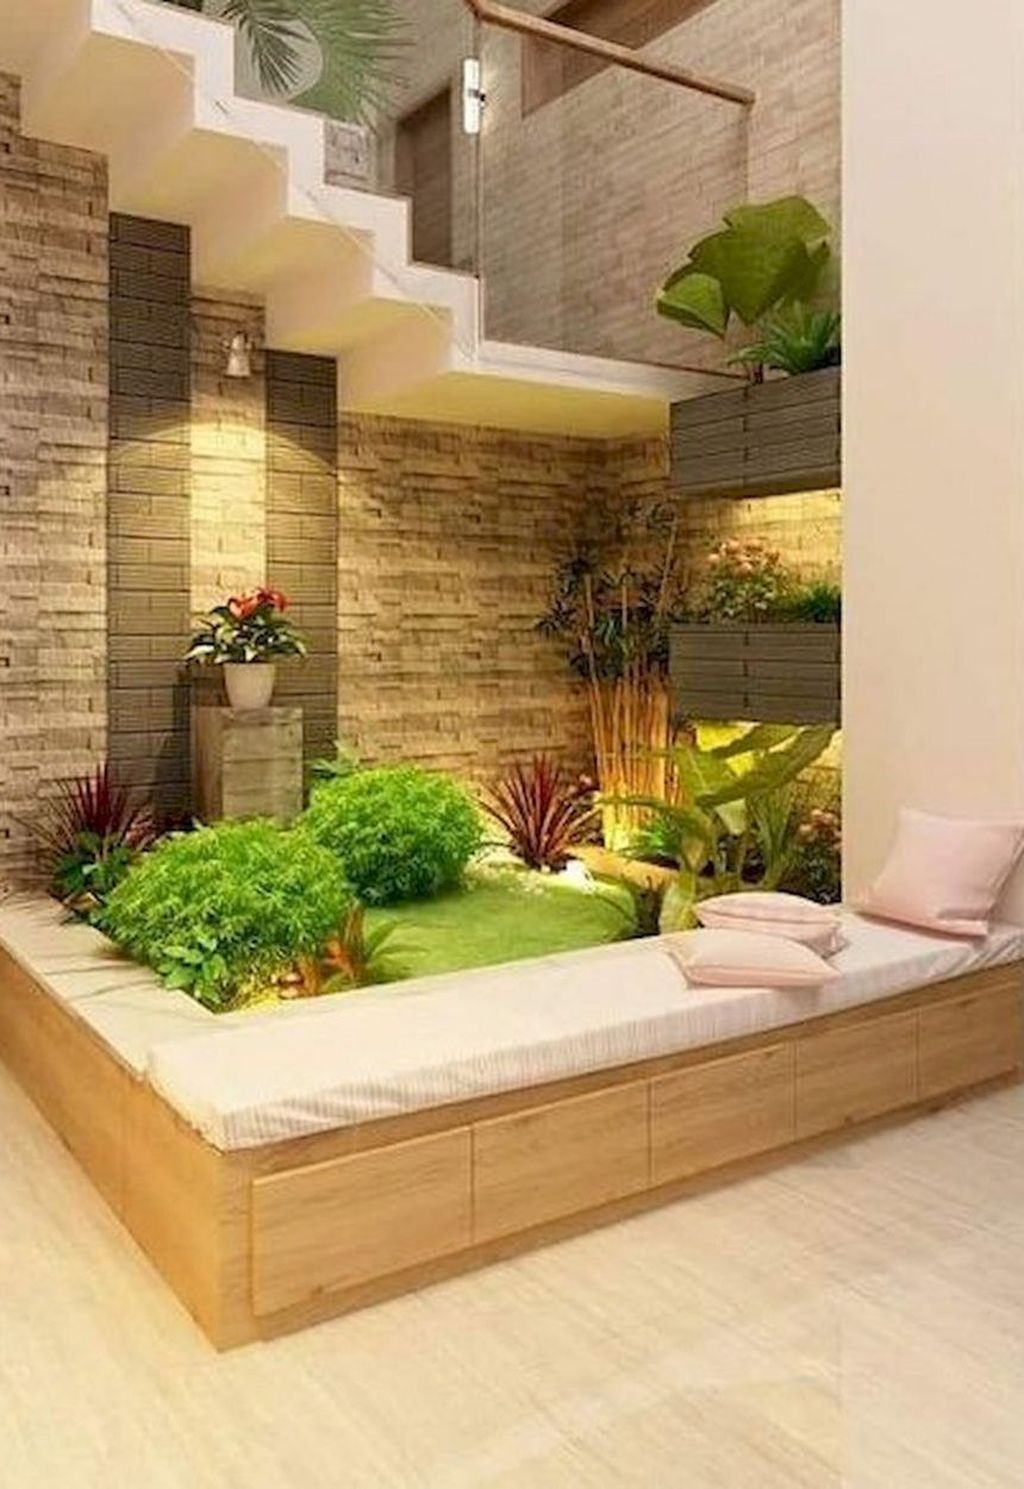 10 Rustic Indoor Garden Design Ideas For Your Inspiration You